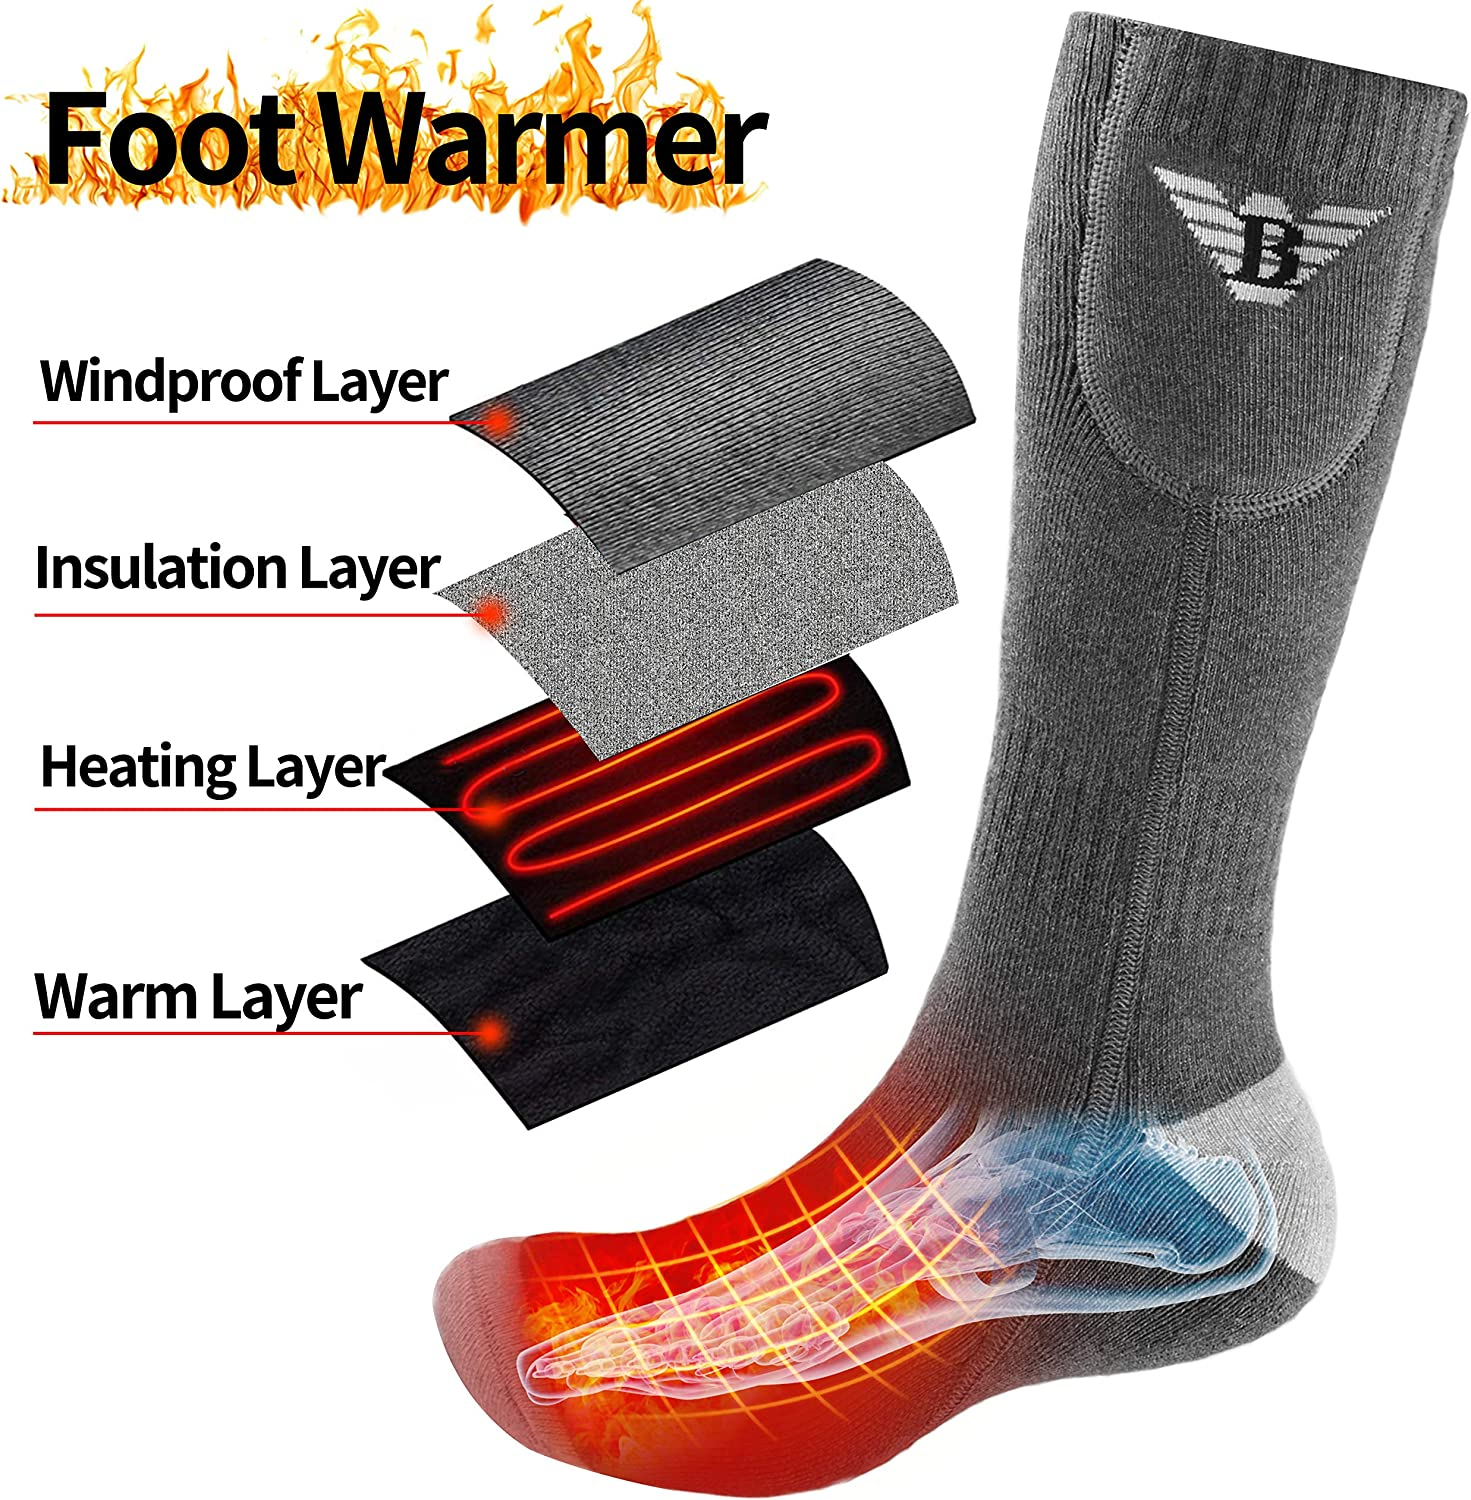 Grey-Heat Instep, L Begleri Electric Heated Socks for Men Women Rechargeable Heated Socks 3.7v 4000mAh Heating Socks for Motorcycle,Chronically Cold Feet,Winter Sport,Outdoor